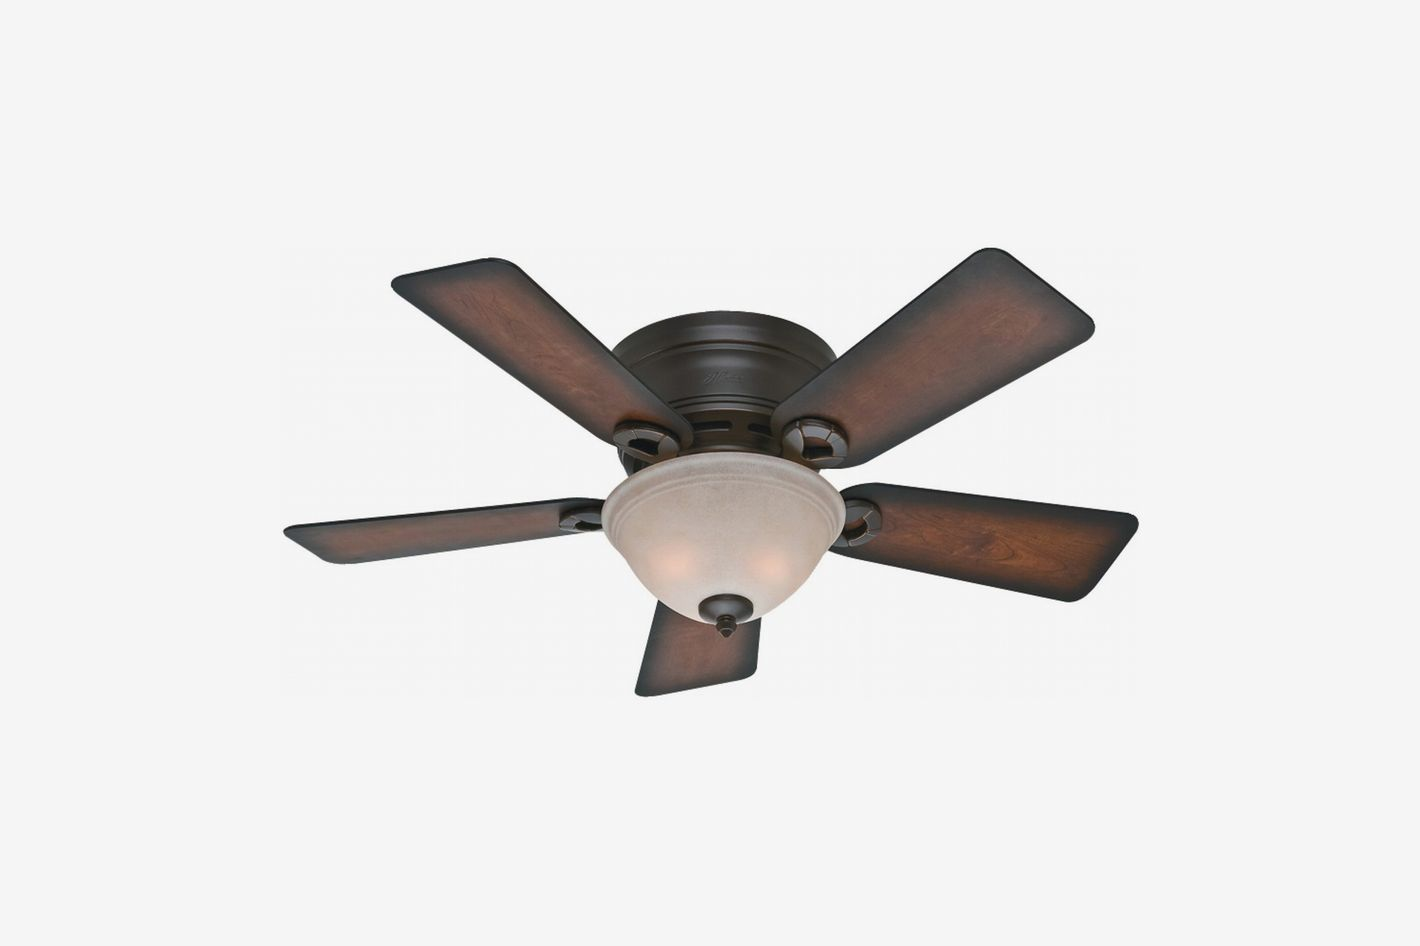 Hunter Fans 51023 Conroy Bengal Ceiling Fan with Five Burnished Mahogany Blades and a Light Kit, 42-Inch